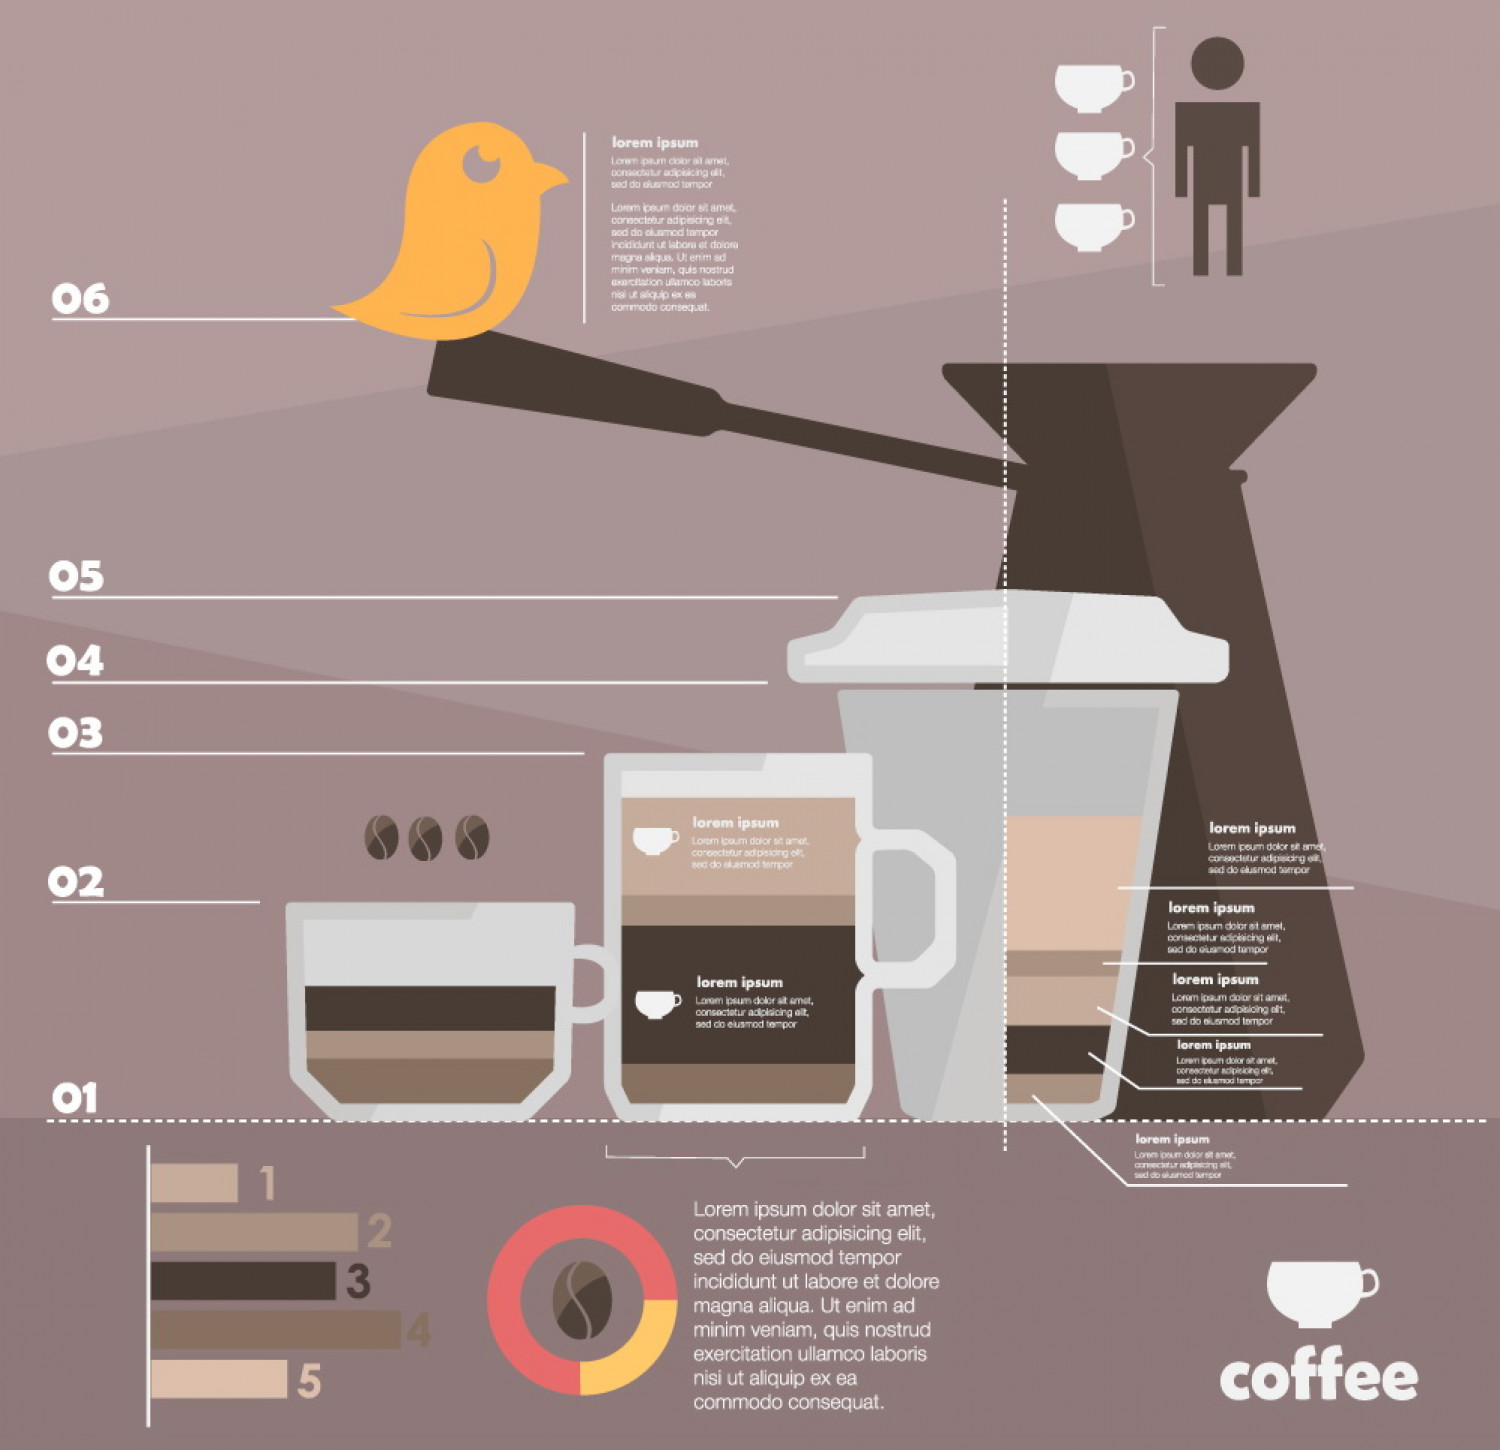 template-infographic-coffee_52a8aea0bc44